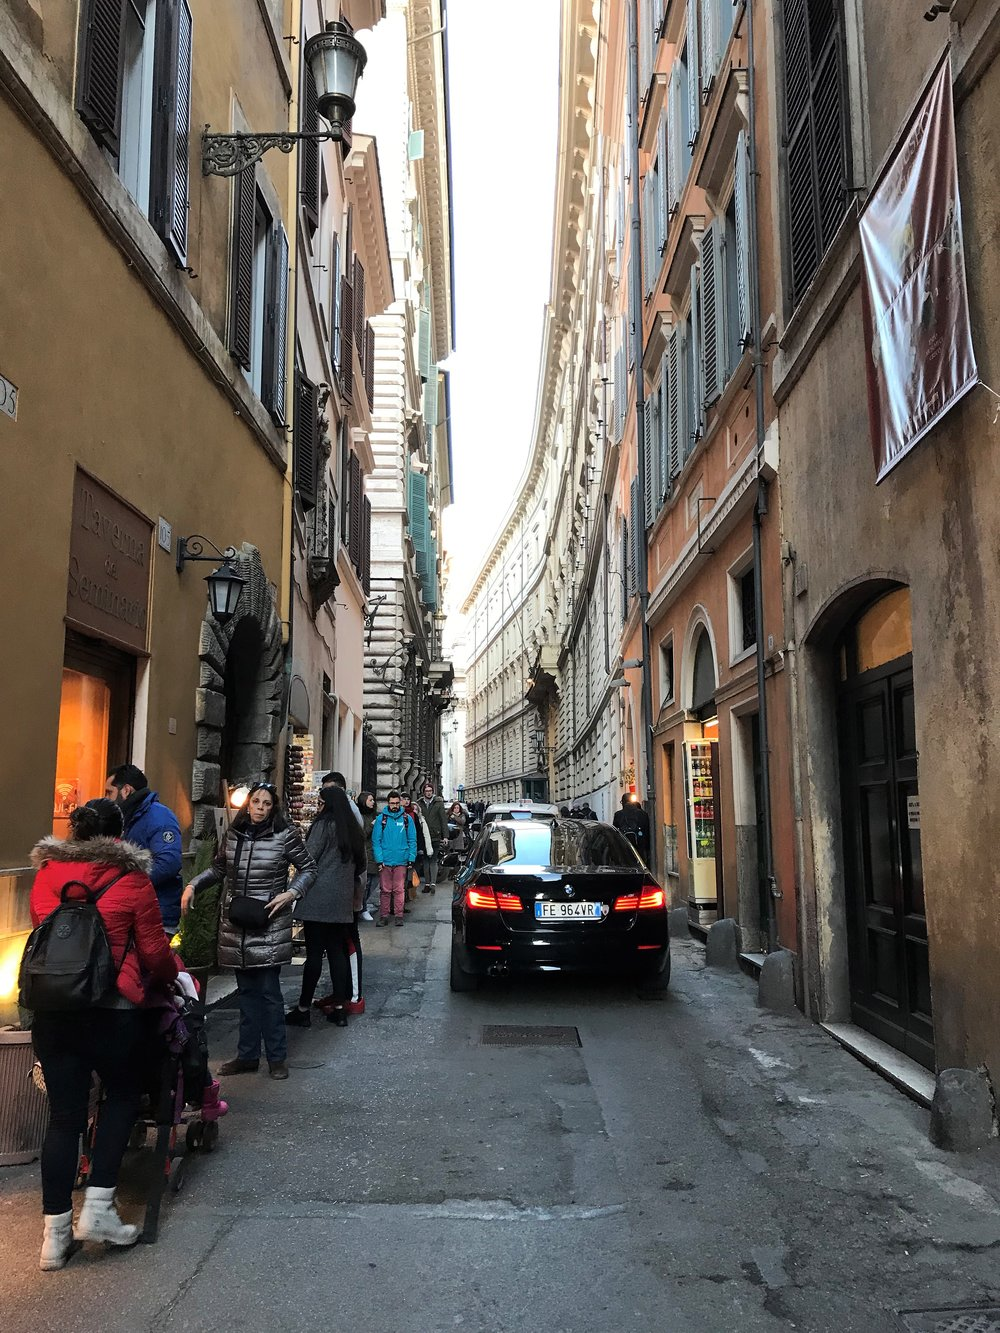 Exploring the streets of Rome